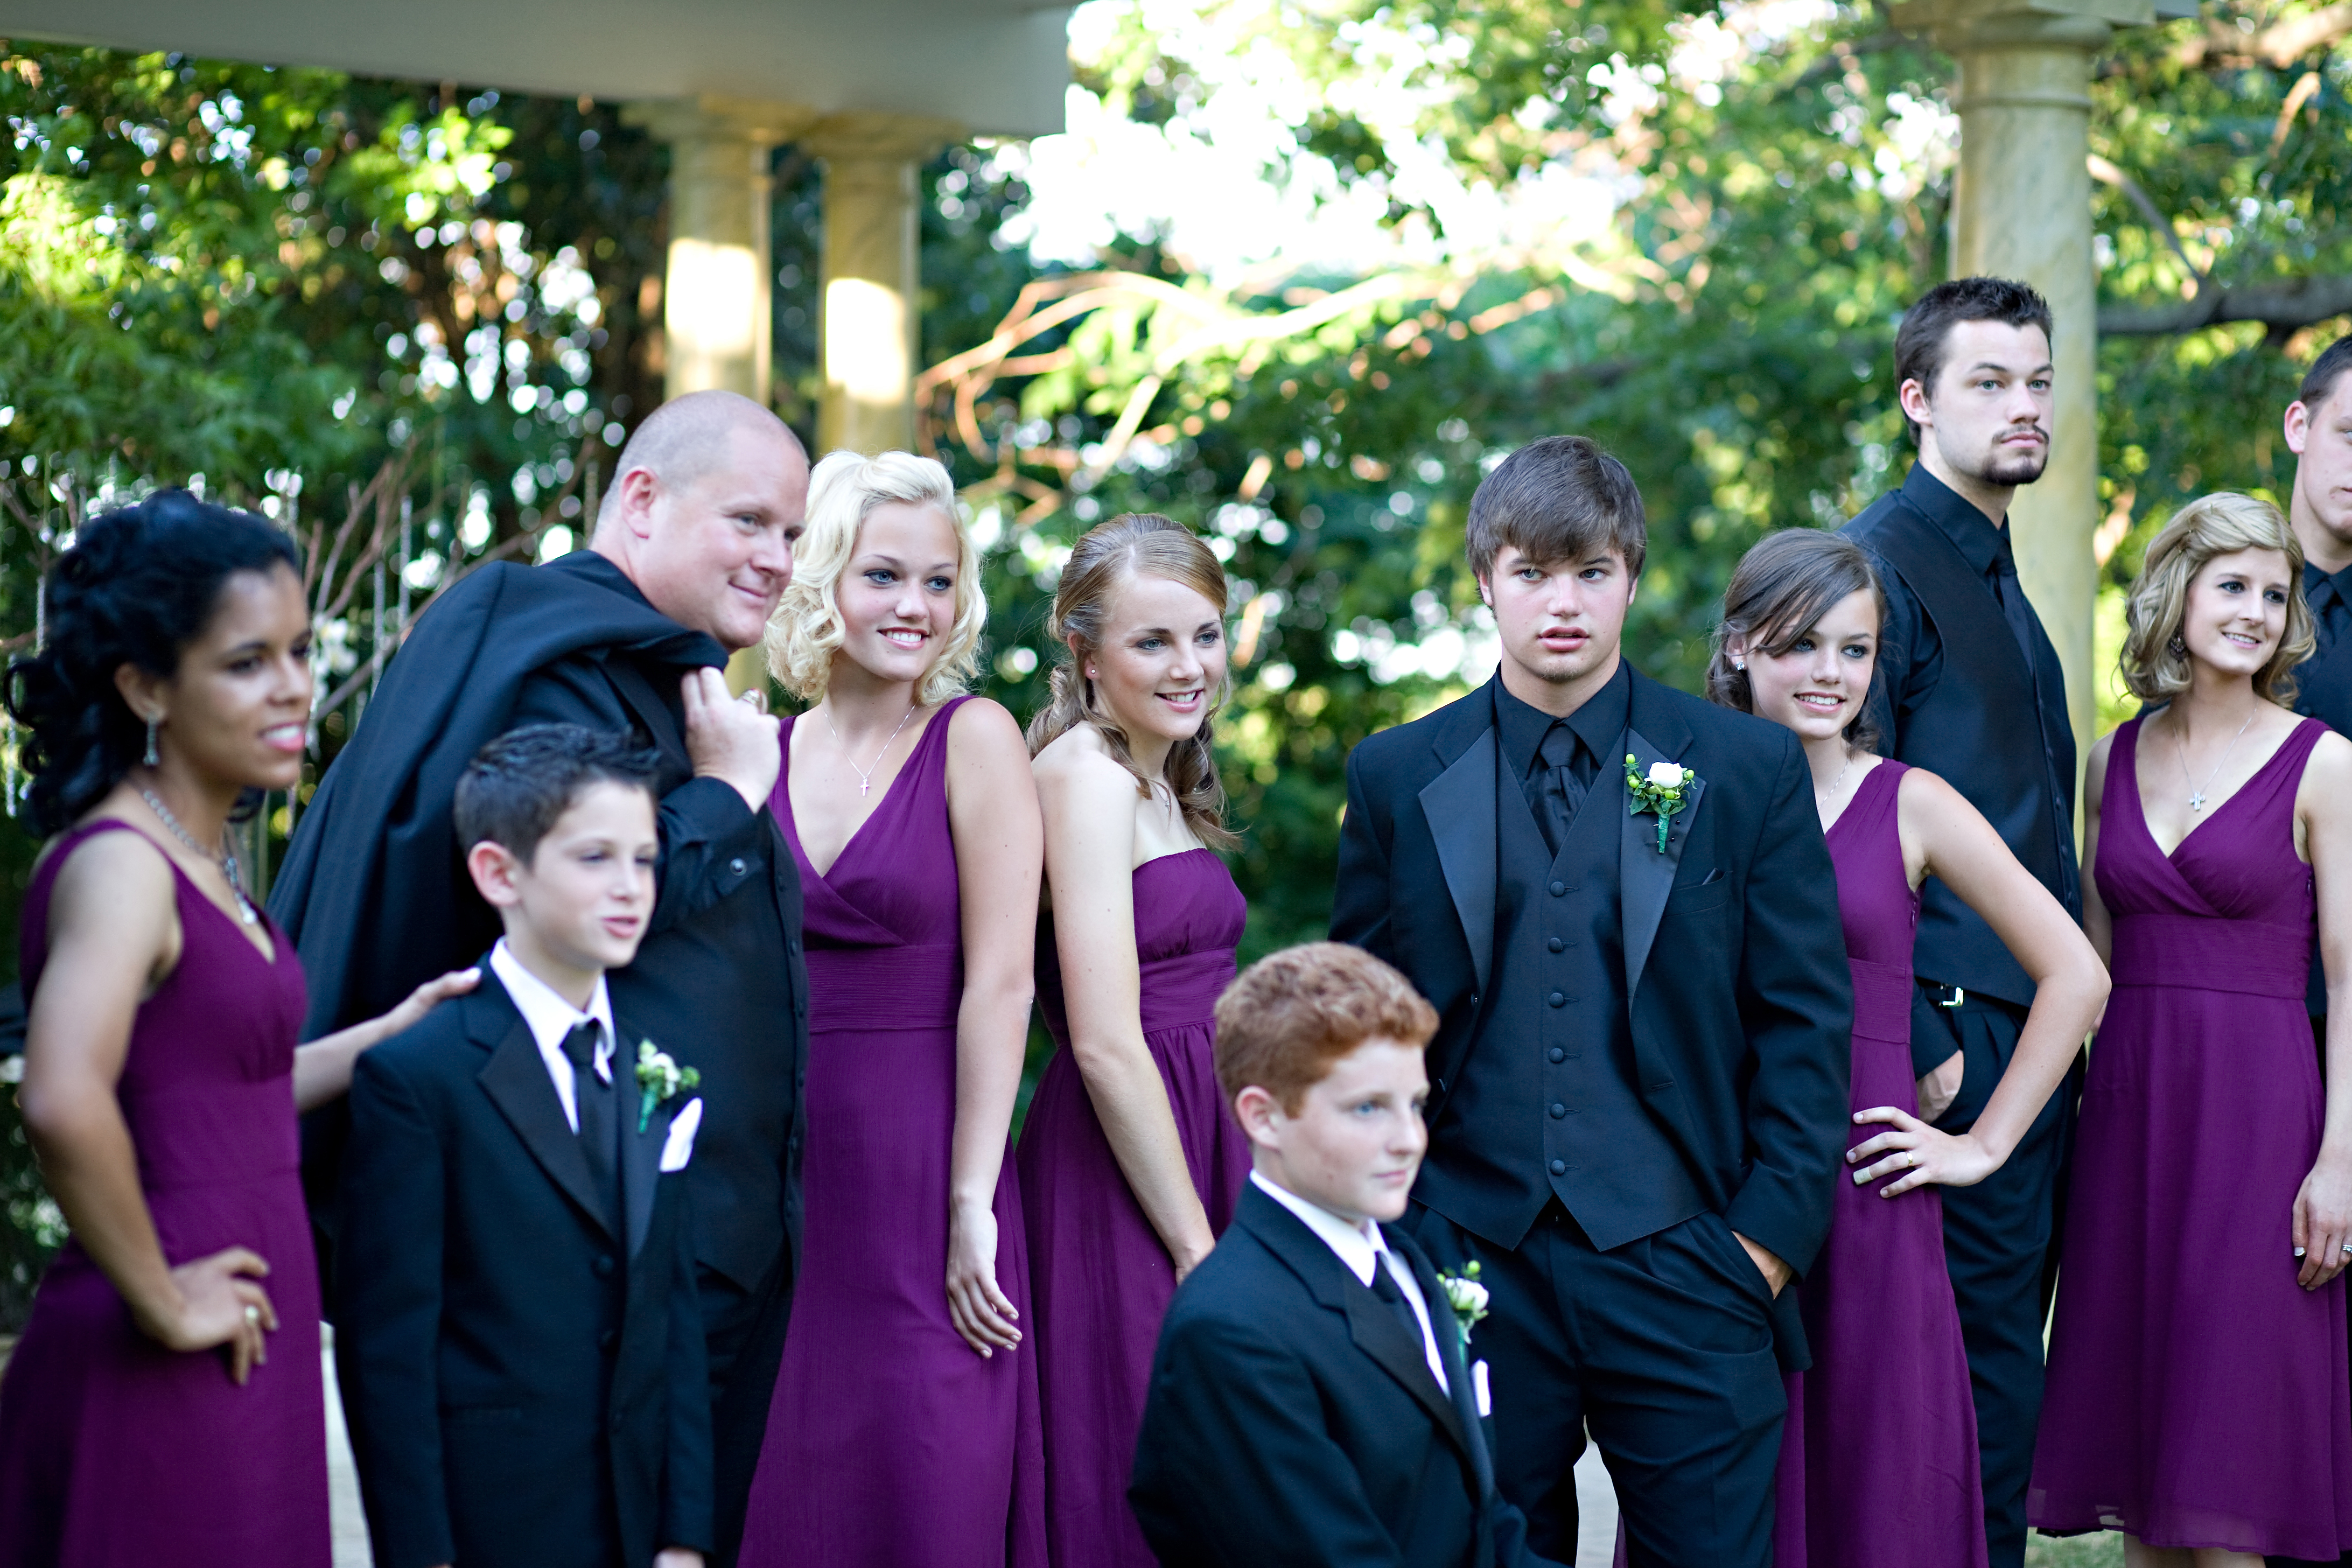 Bridesmaids, Bridesmaids Dresses, Wedding Dresses, Fashion, purple, black, dress, Dresses